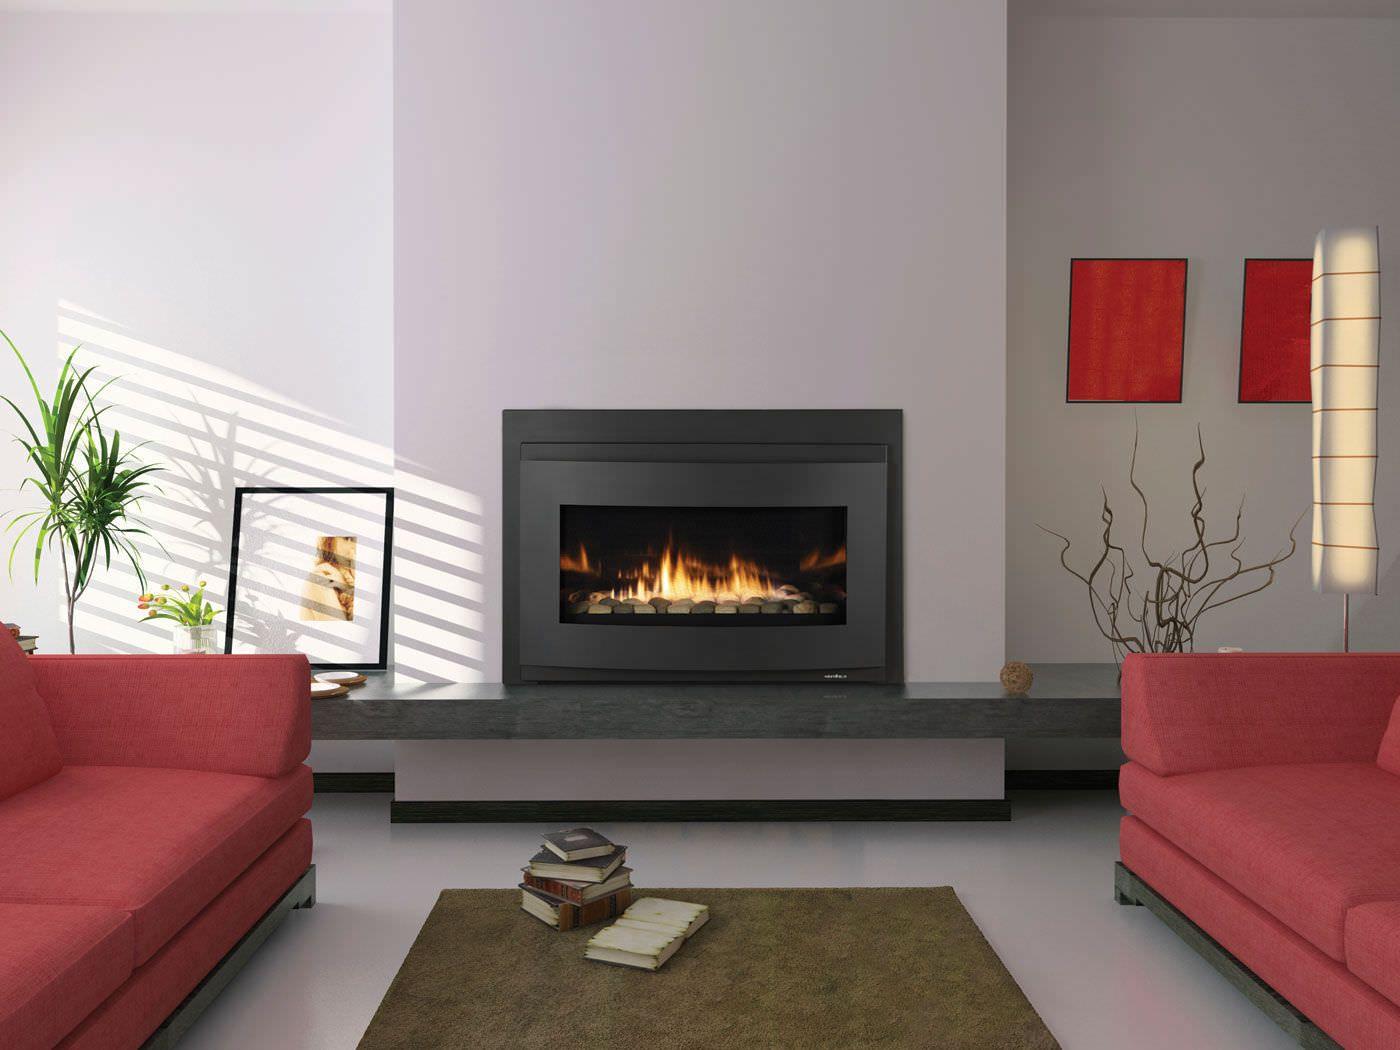 Gas Fireplace Insert 1 Sided Remote Controlled Cosmo Heat Modern Gas Fireplace Inserts Contemporary